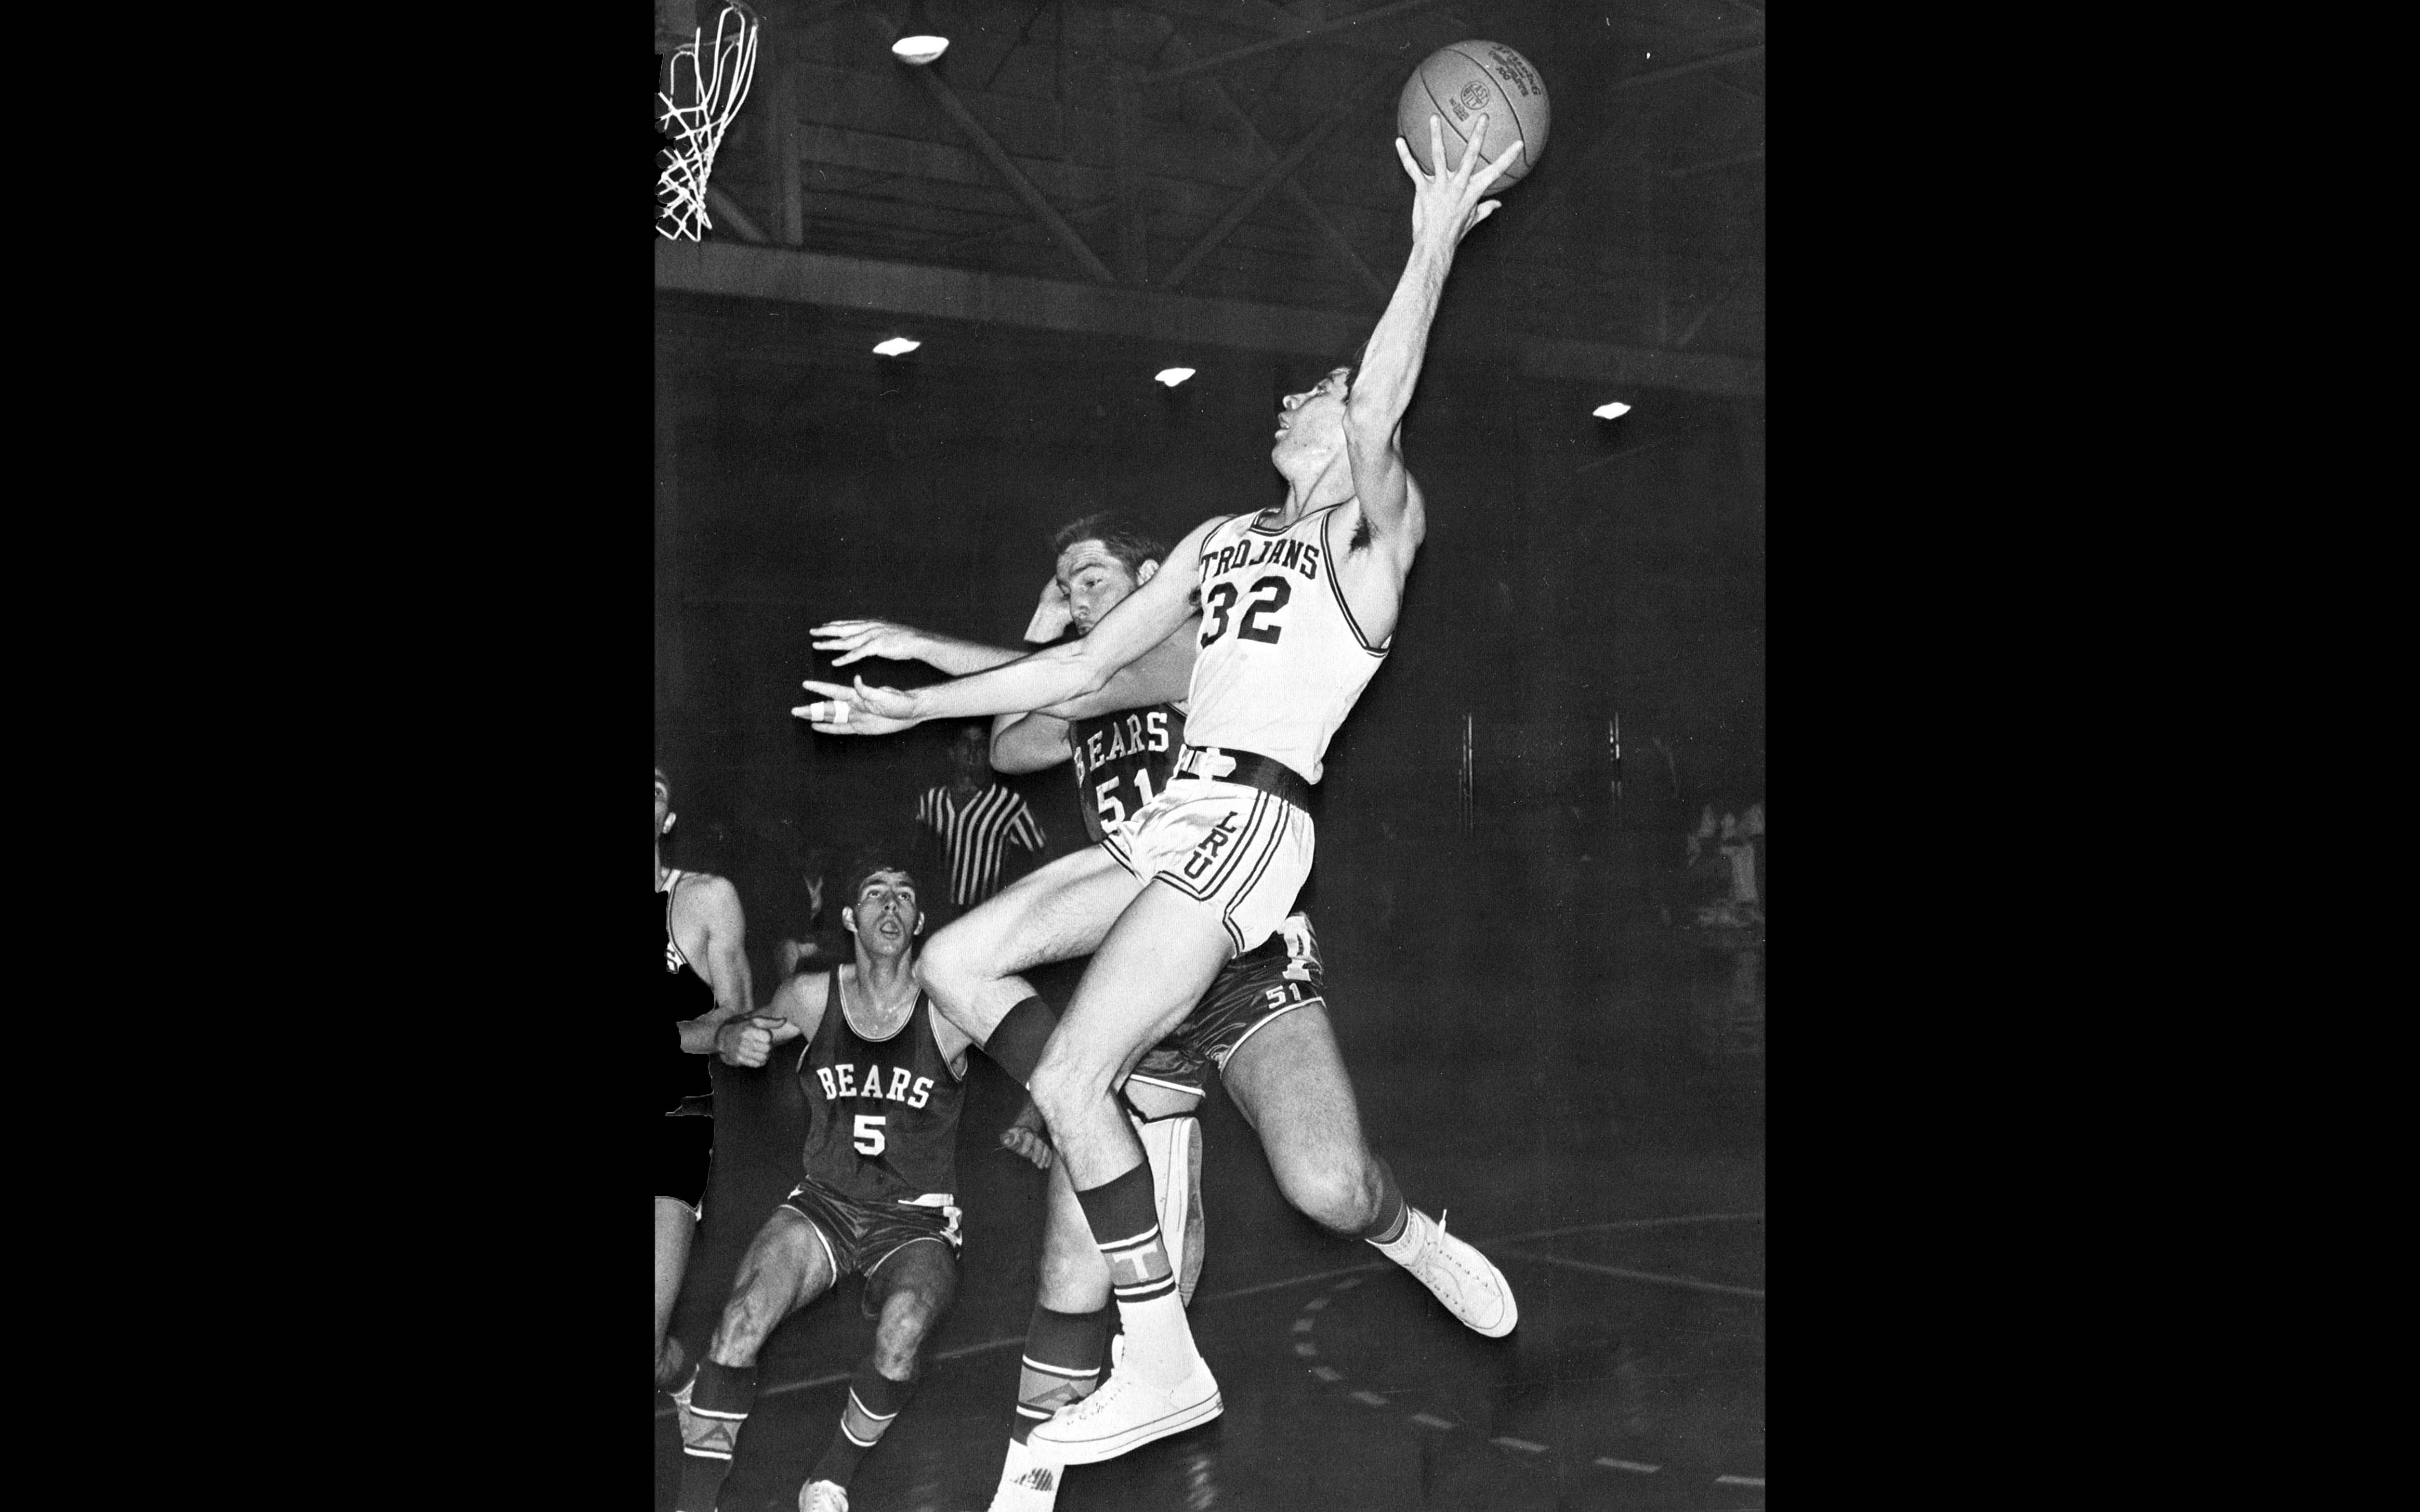 Unable to get under the basket for a lay up, Cecil Wicker used the hook shot to good advantage. (Little Rock University Yearbook, Vol. 41, 1969)